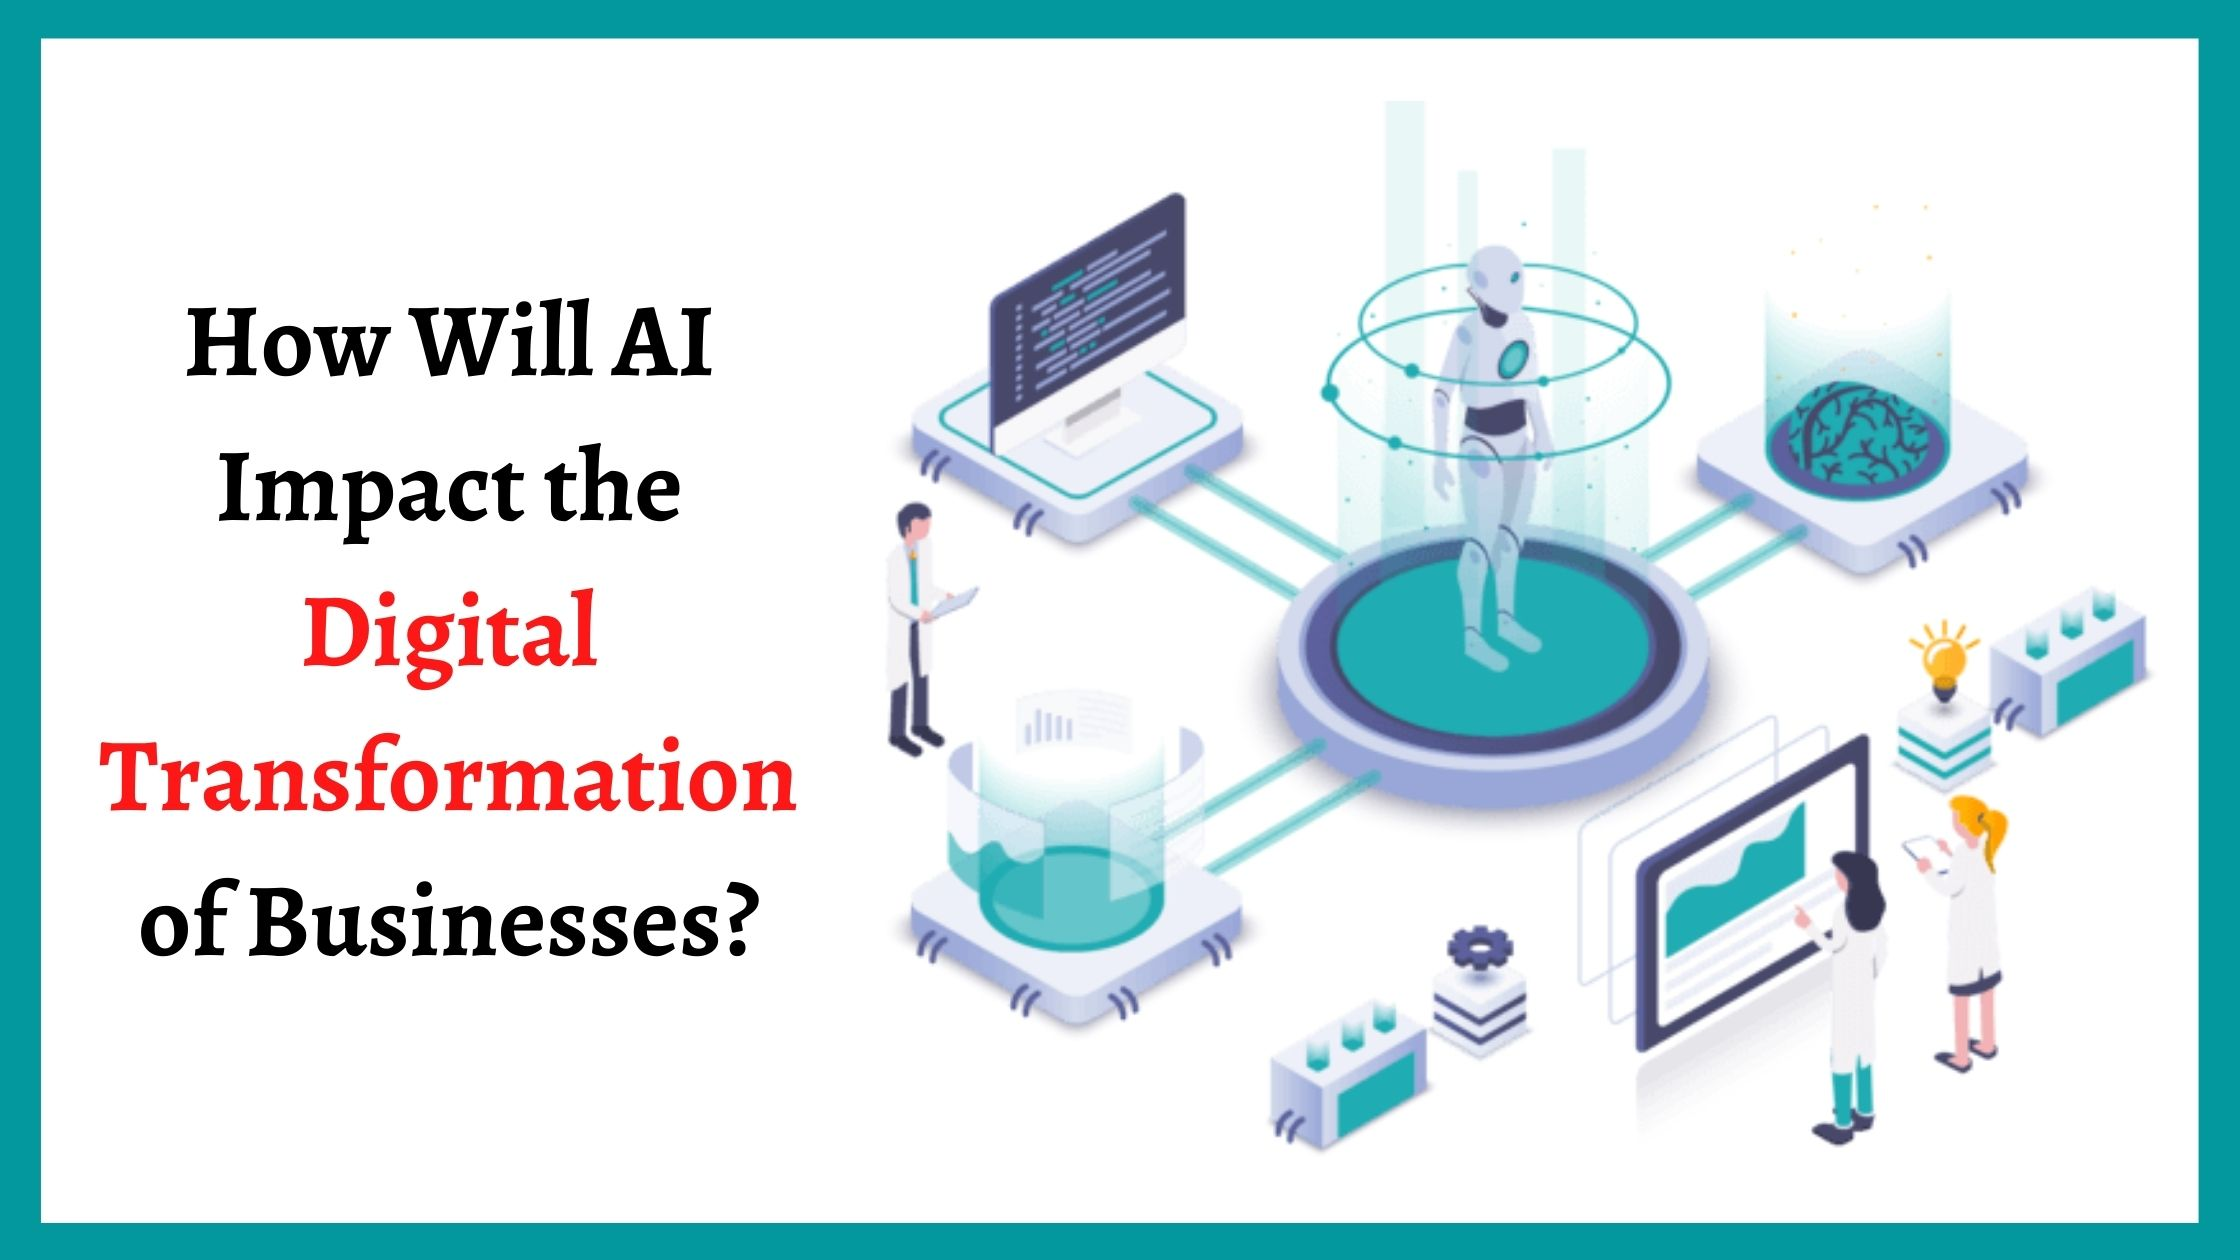 How Will AI Impact the Digital Transformation of Businesses